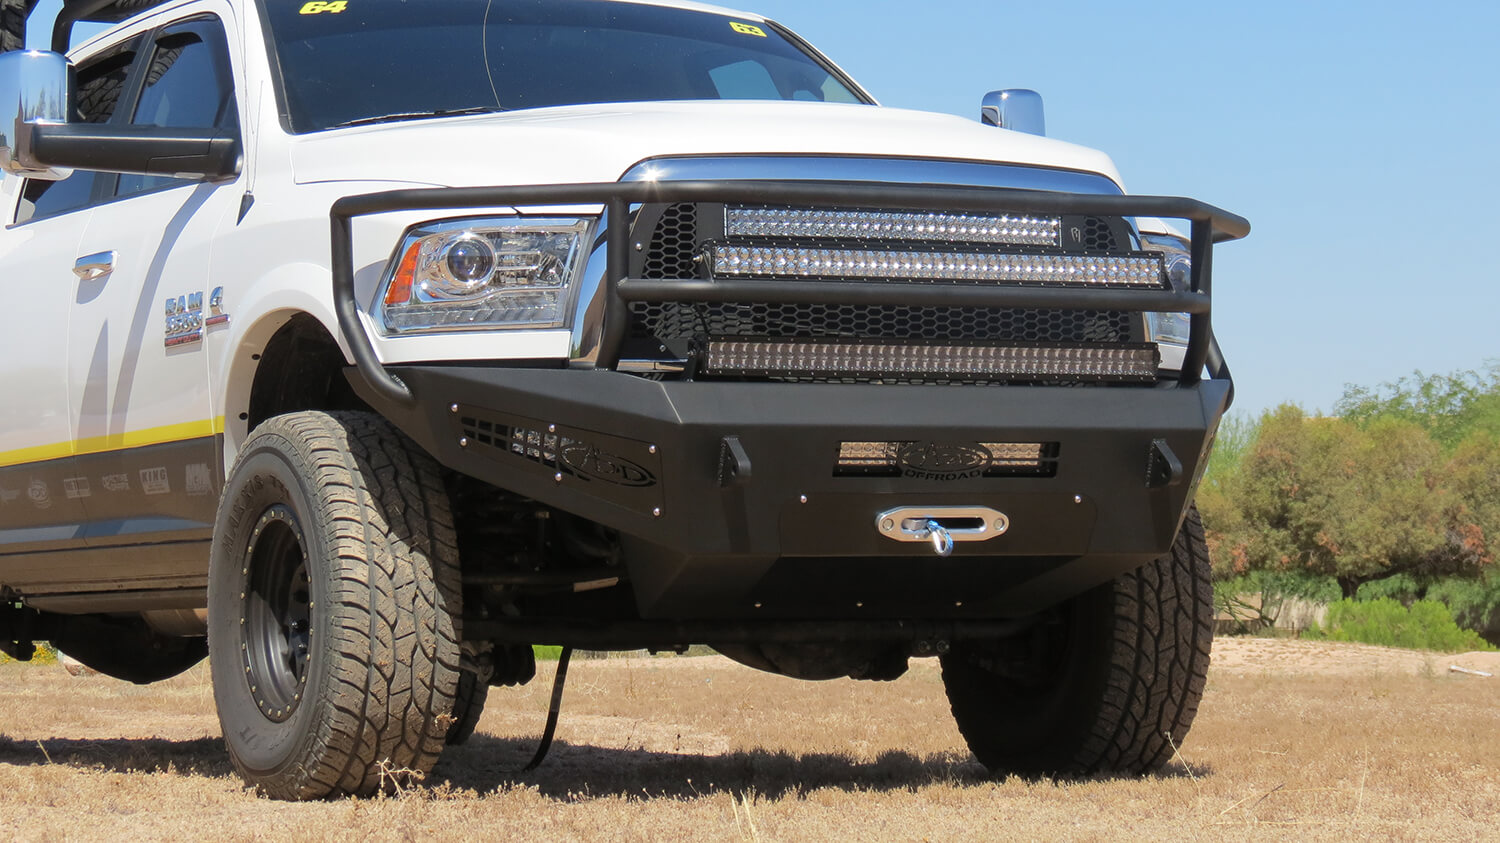 2003 2009 Dodge Ram 2500 3500 Standard Front Bumper With Stealth Led Light Bar 2010 2017 Honeybadger Rancher Winch Mounts And